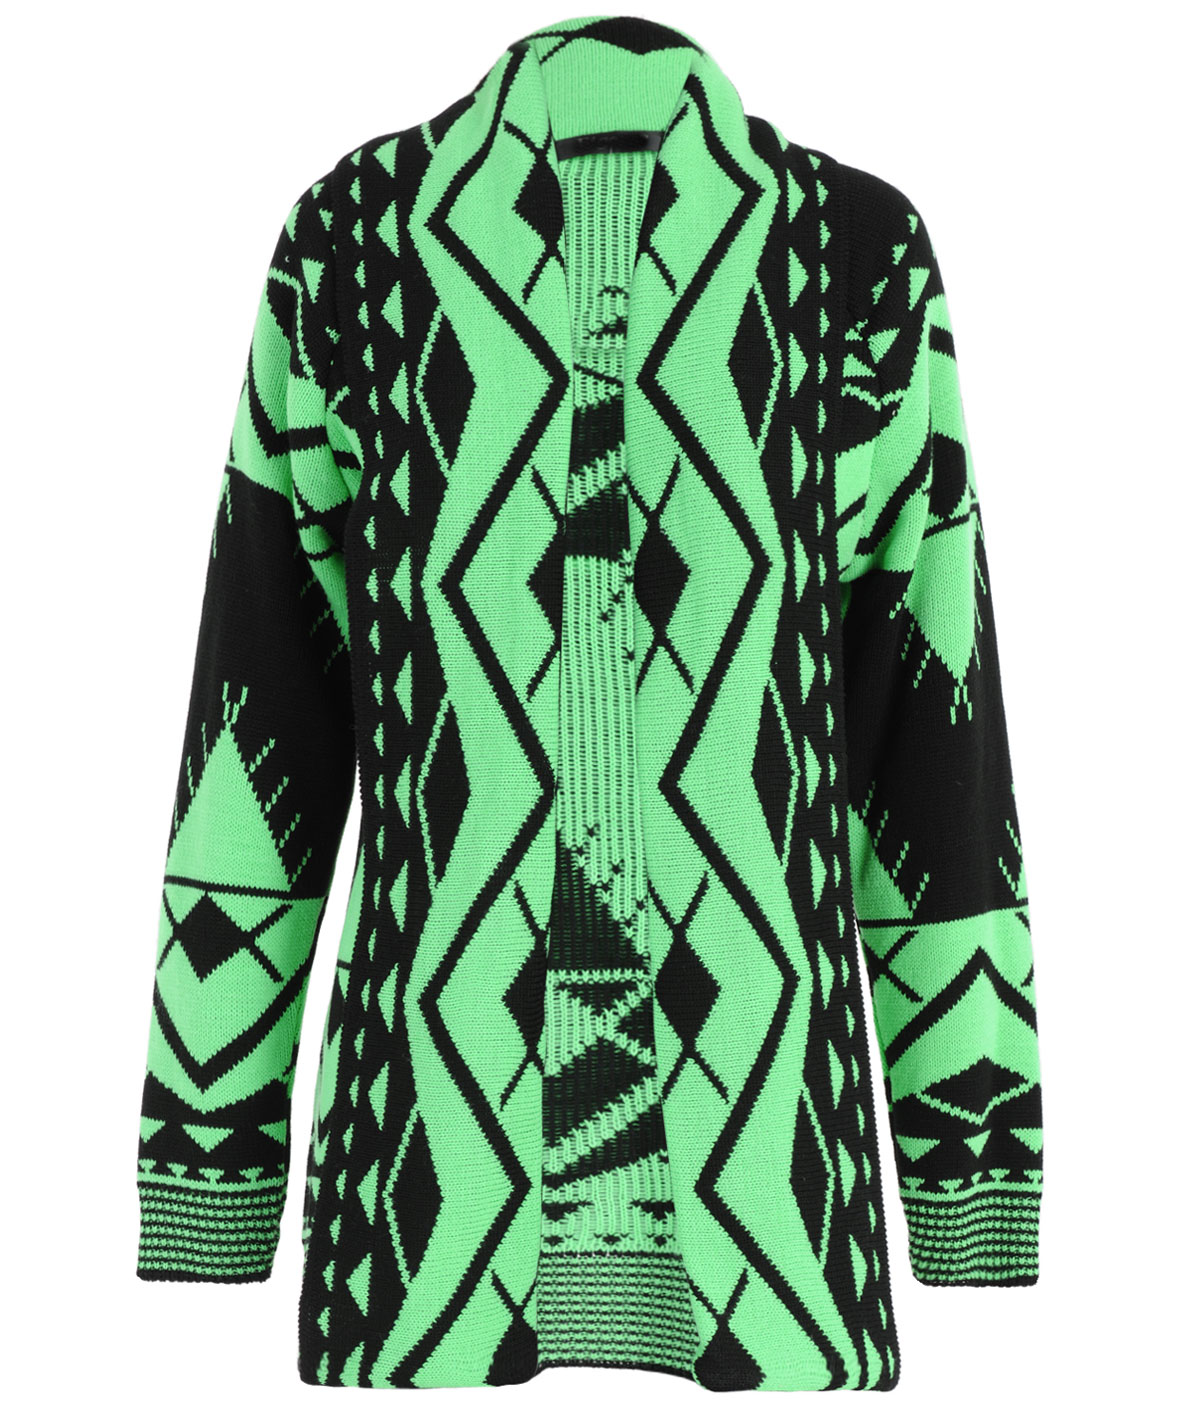 Shop for aztec print cardigan sweater online at Target. Free shipping on purchases over $35 and save 5% every day with your Target REDcard.